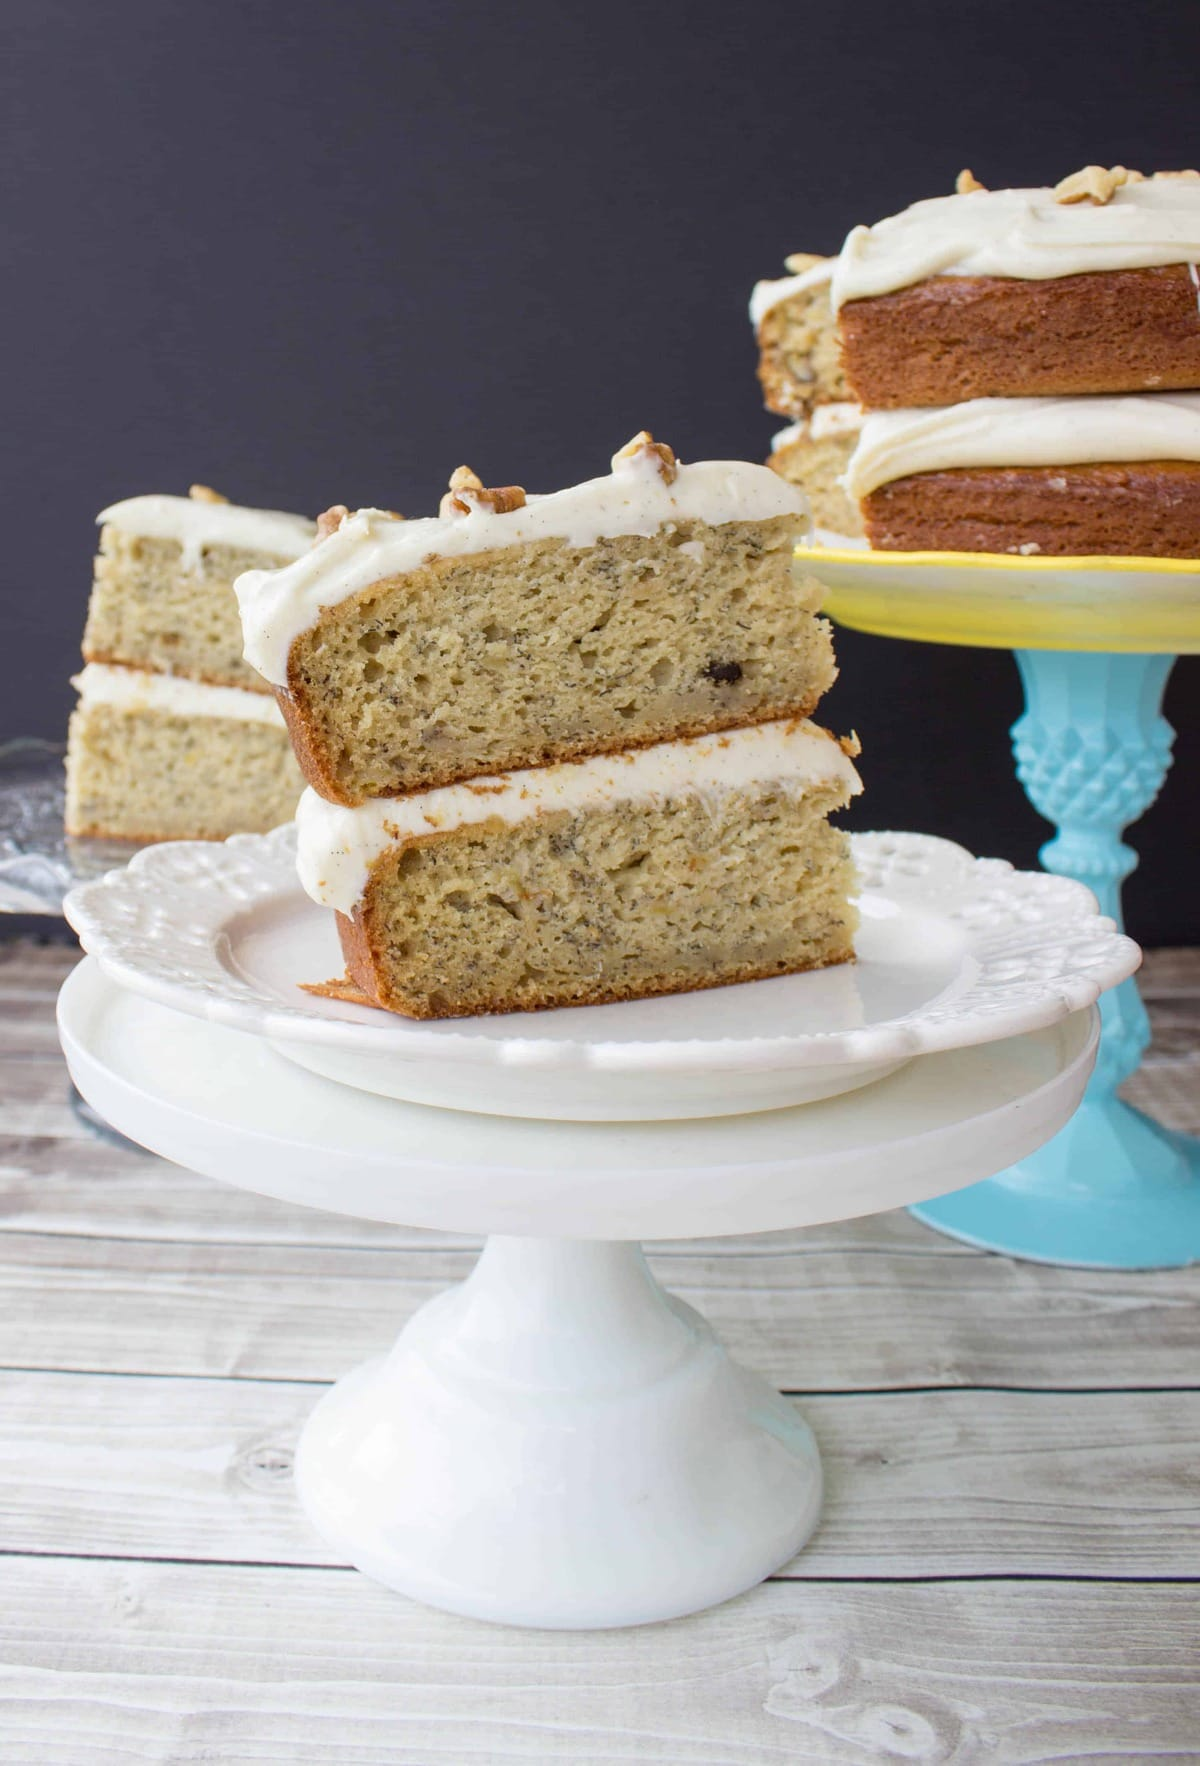 Cake With Cream Cheese Frosting : Banana Cake with Brown Sugar Cream Cheese Frosting - Sugar ...